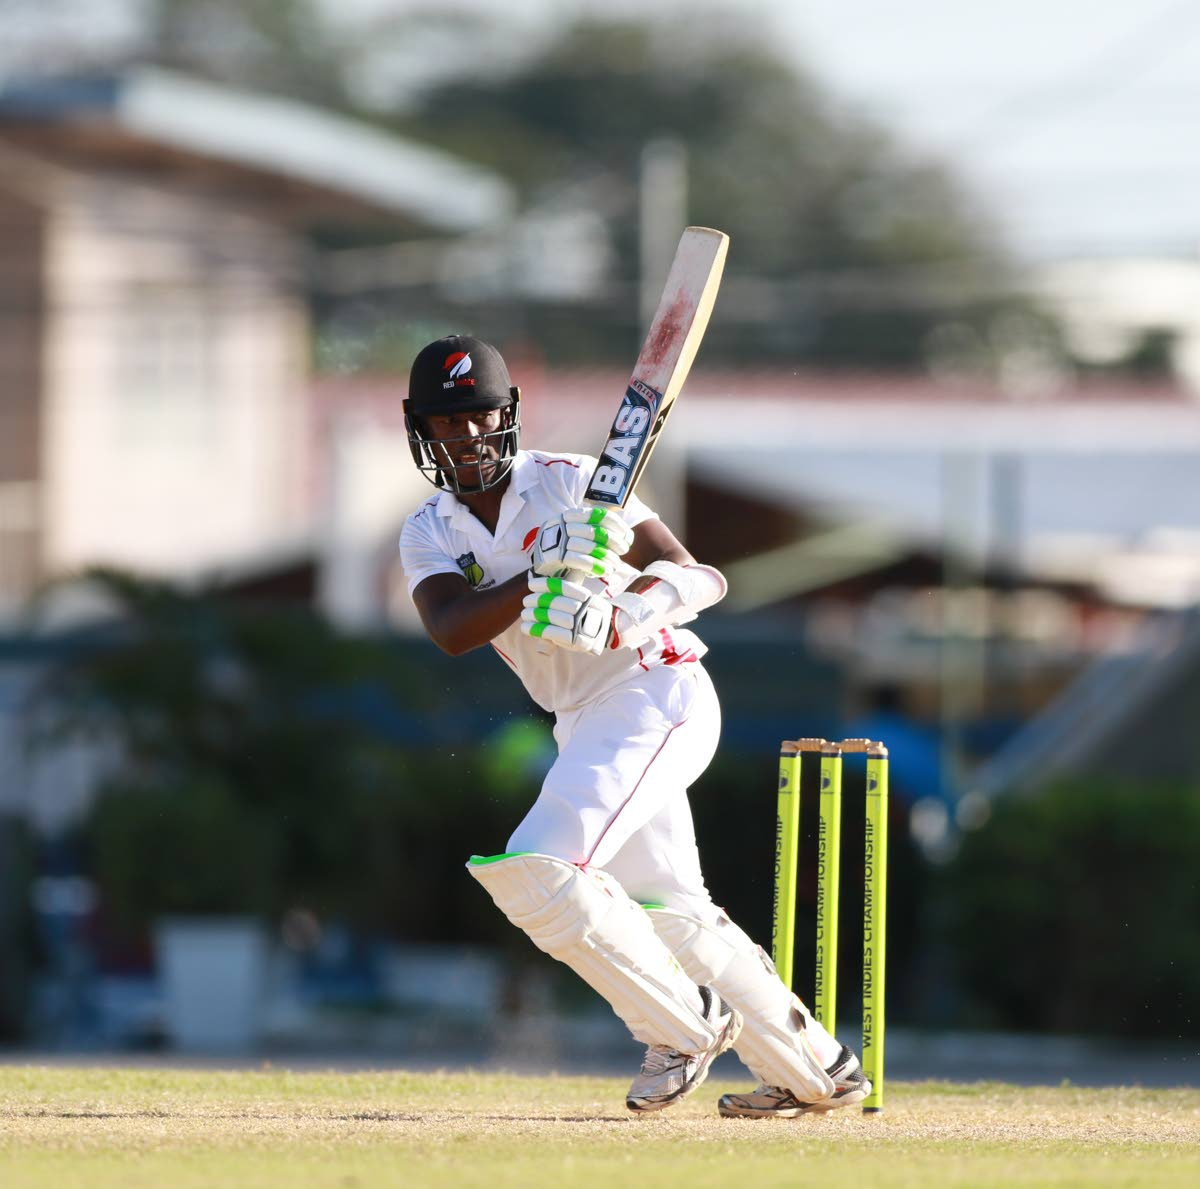 Image result for Trinidad & Tobago vs Guyana cricket photos